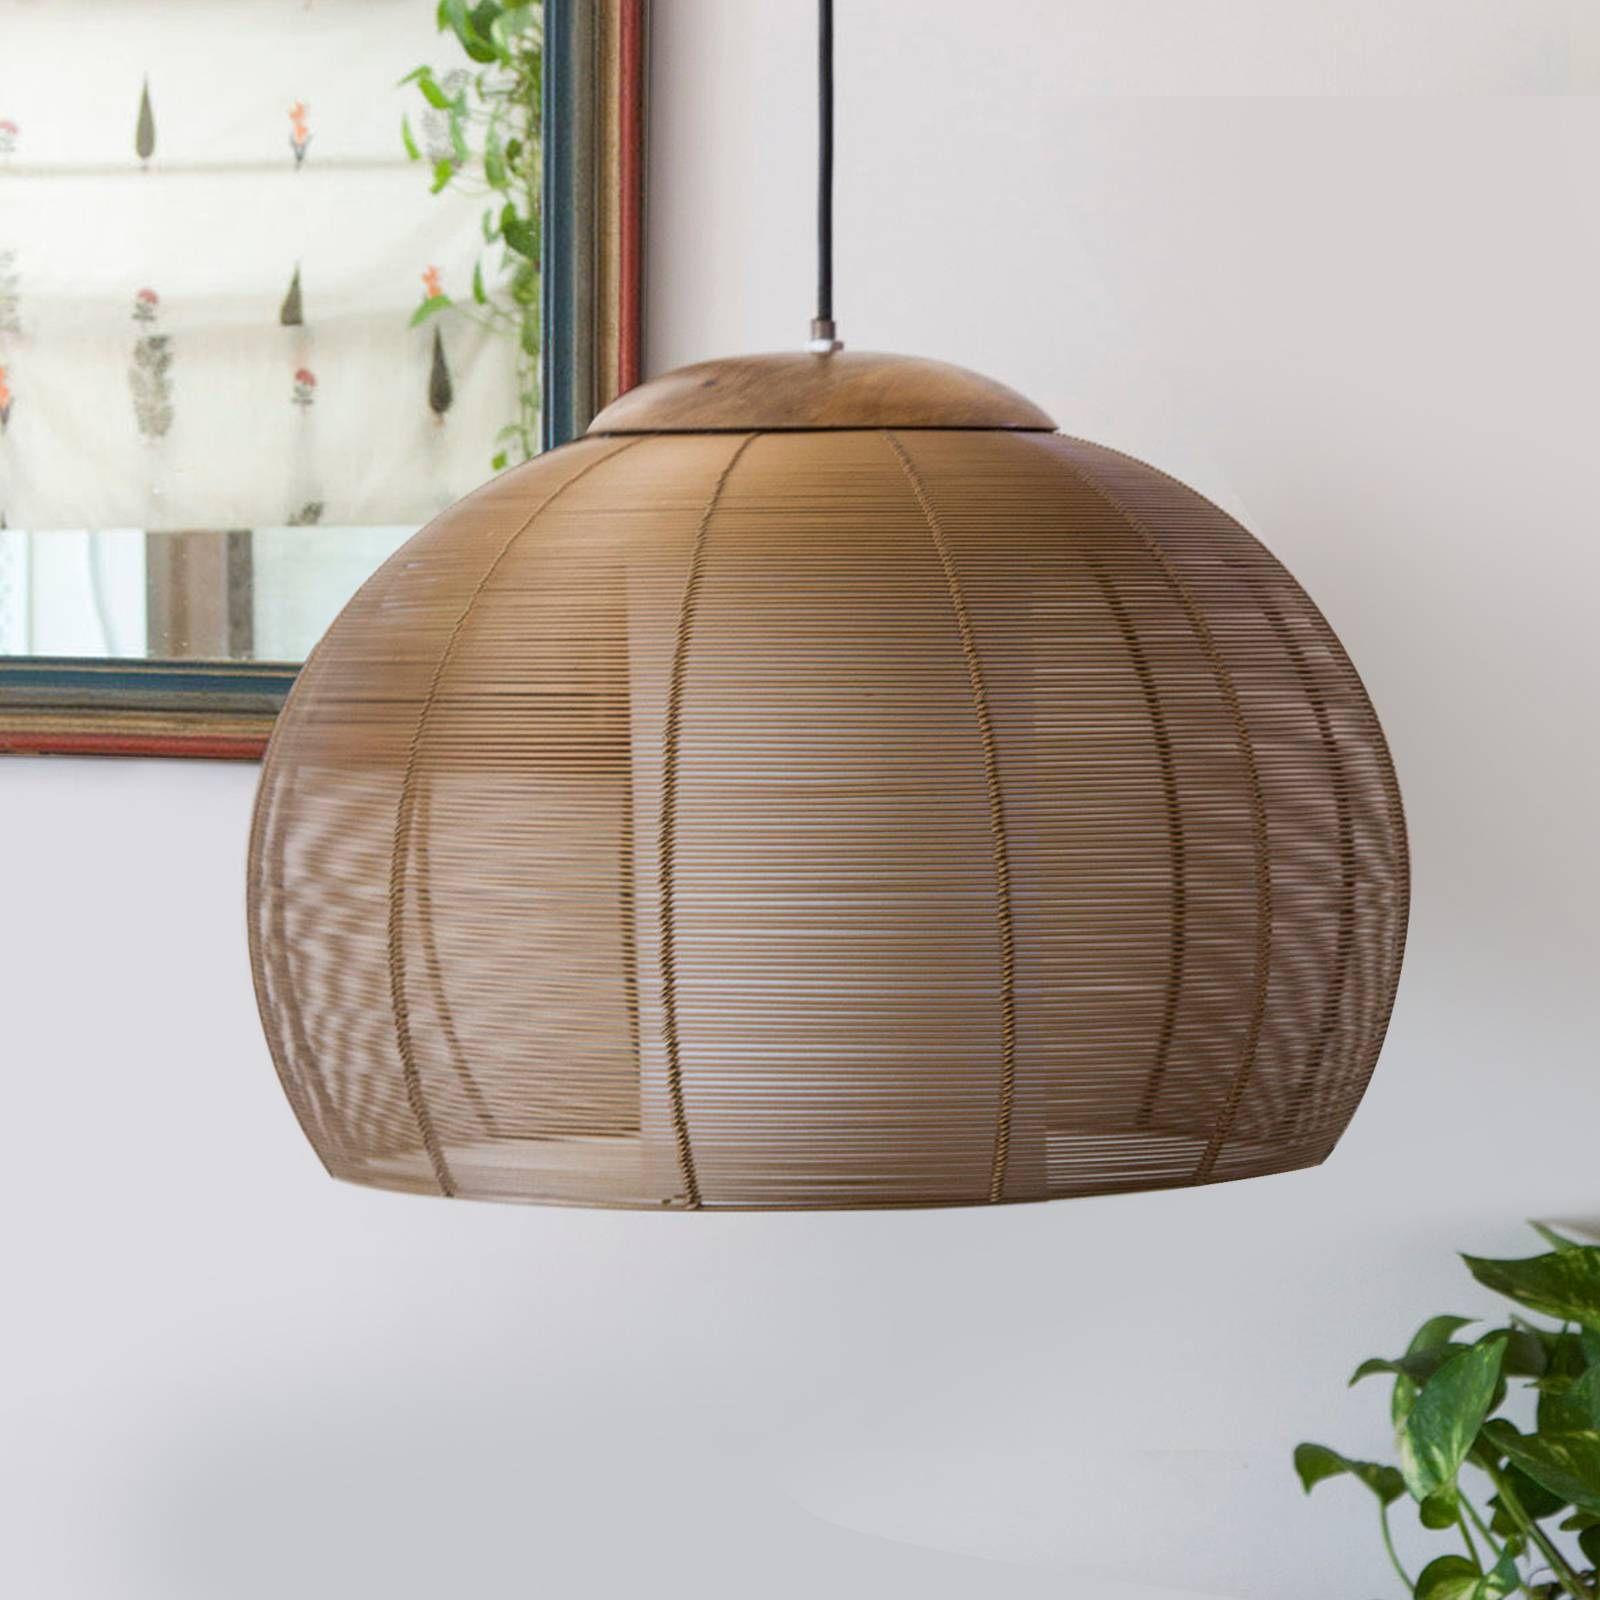 Ceiling Lights Buy Modern Ceiling Lamps Online At The Best Prices Urban Ladder